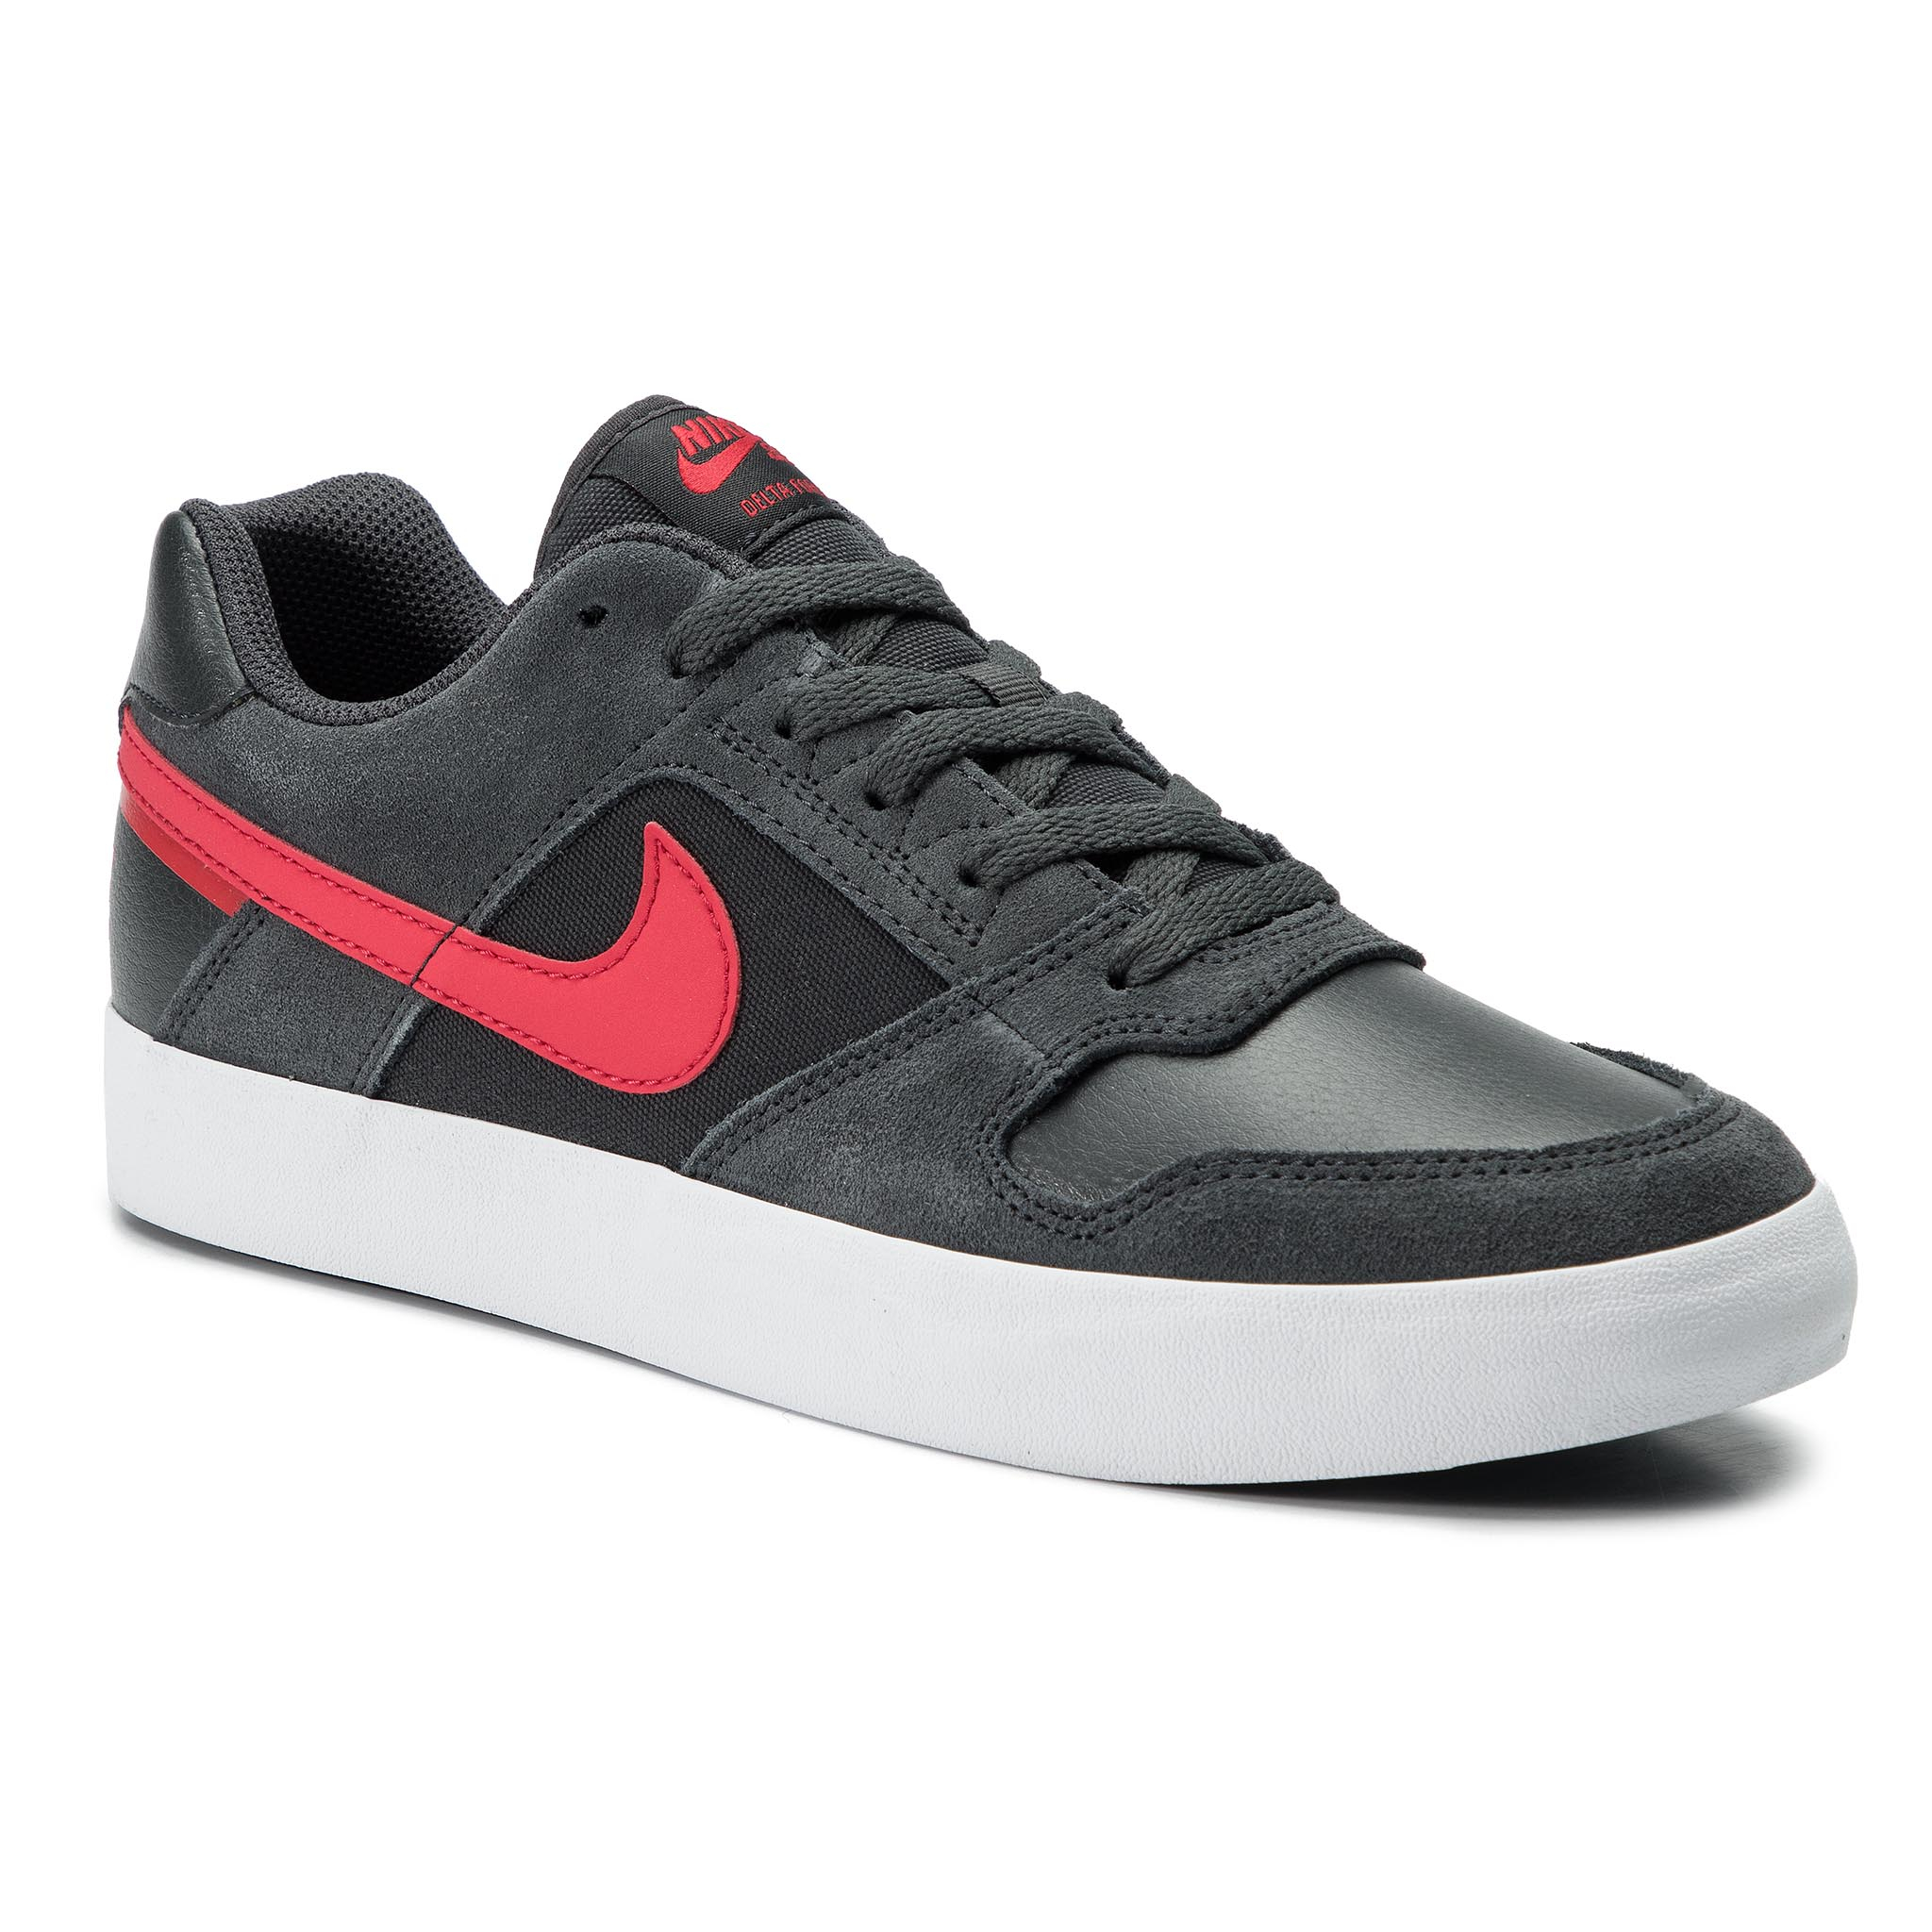 the best attitude 4b6c3 66442 Shoes NIKE. Air Max Command Leather 749760 012 Wolf Grey Mtlc Dark ...